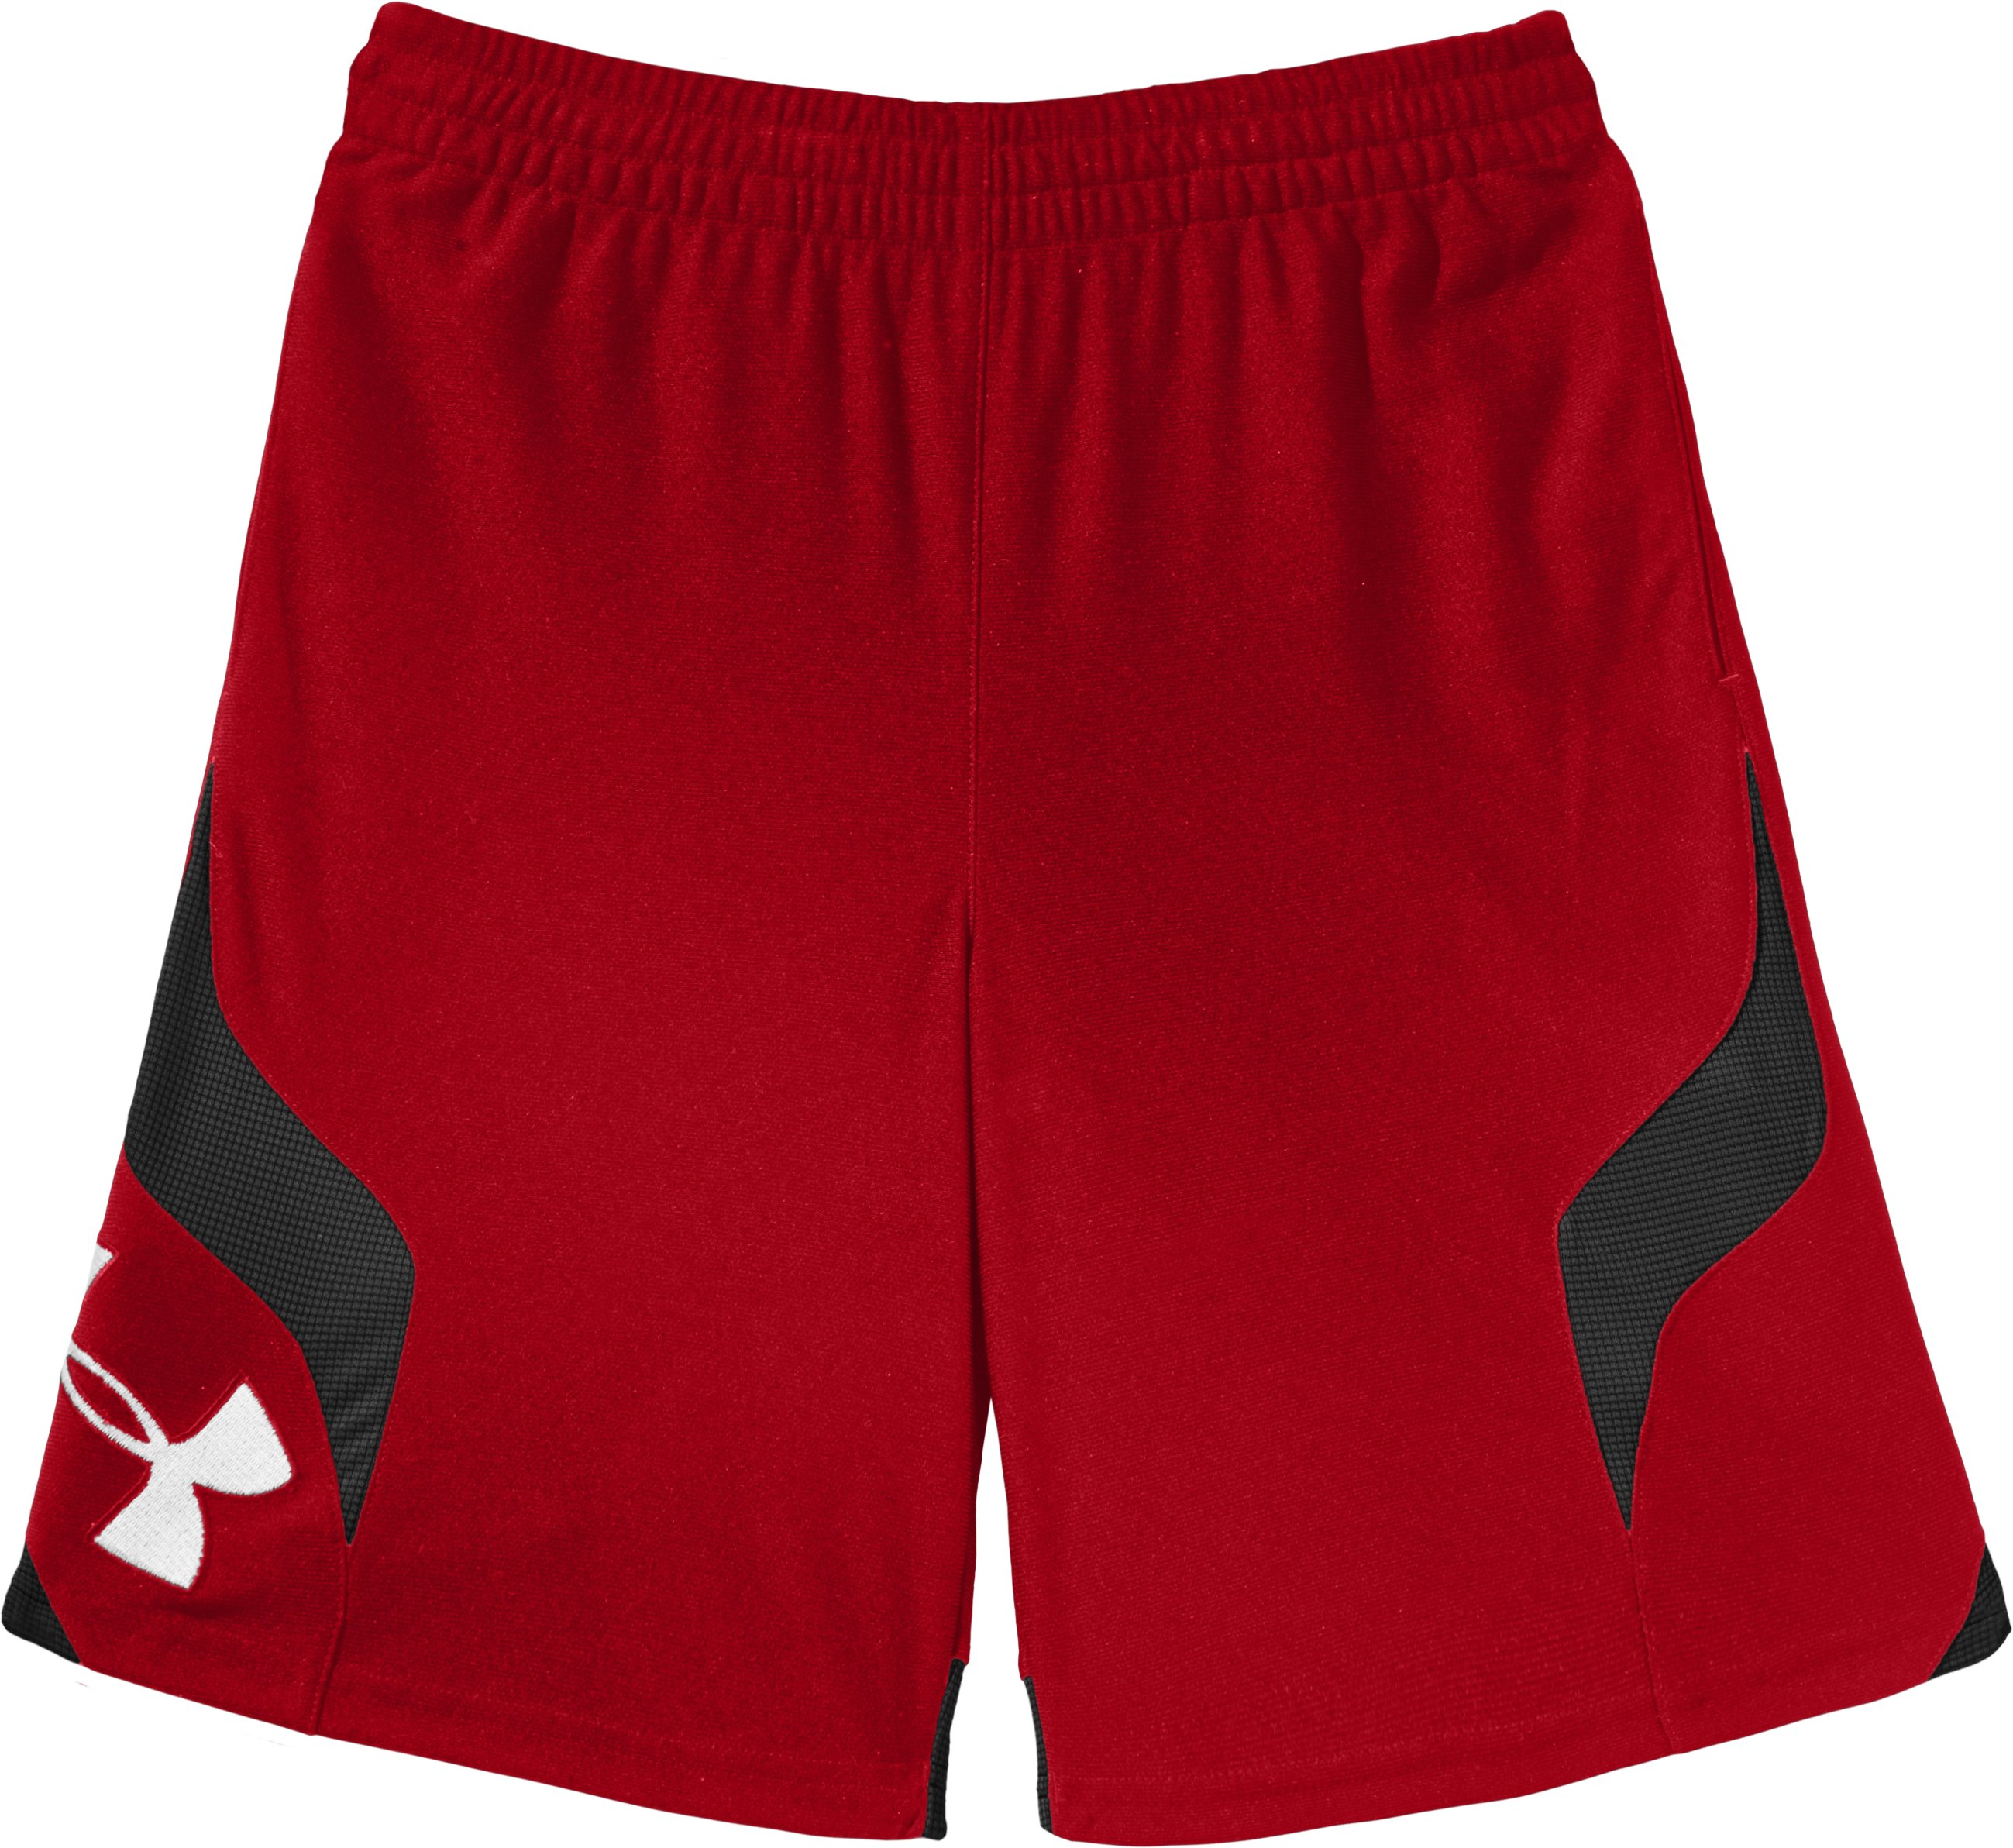 Boys' 4-7 UA Valkyrie Shorts, Red